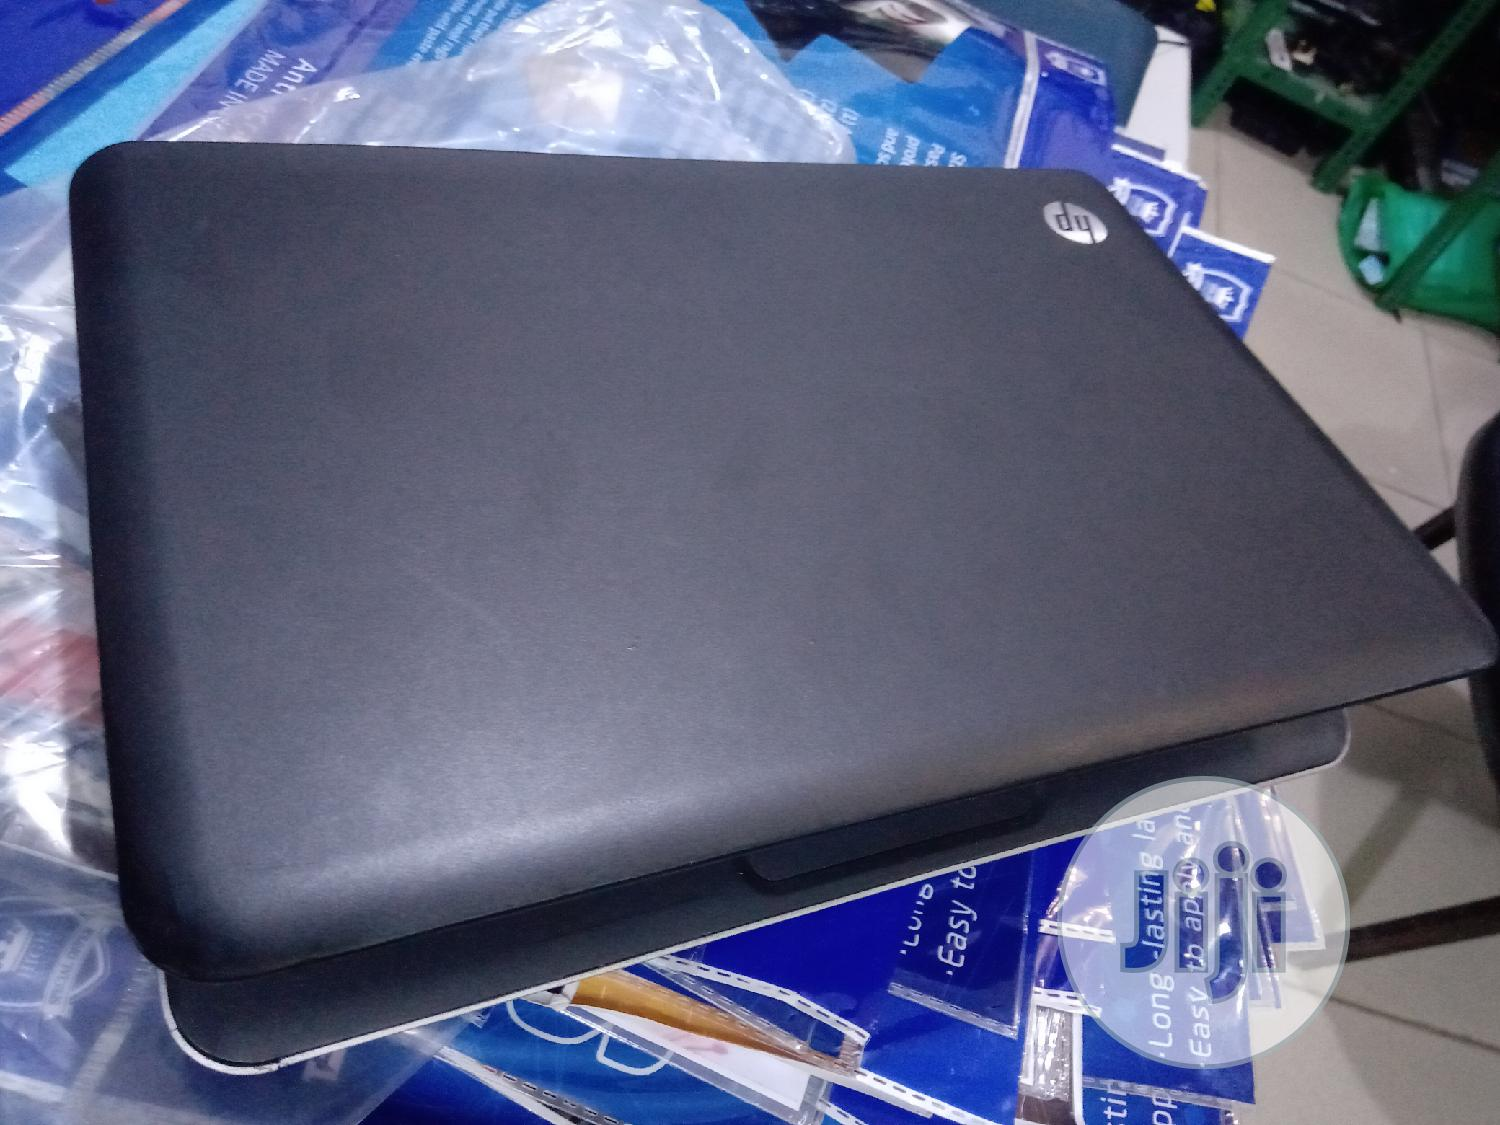 Laptop HP Pavilion DM4 4GB Intel Core I3 HDD 320GB   Laptops & Computers for sale in Wuse, Abuja (FCT) State, Nigeria